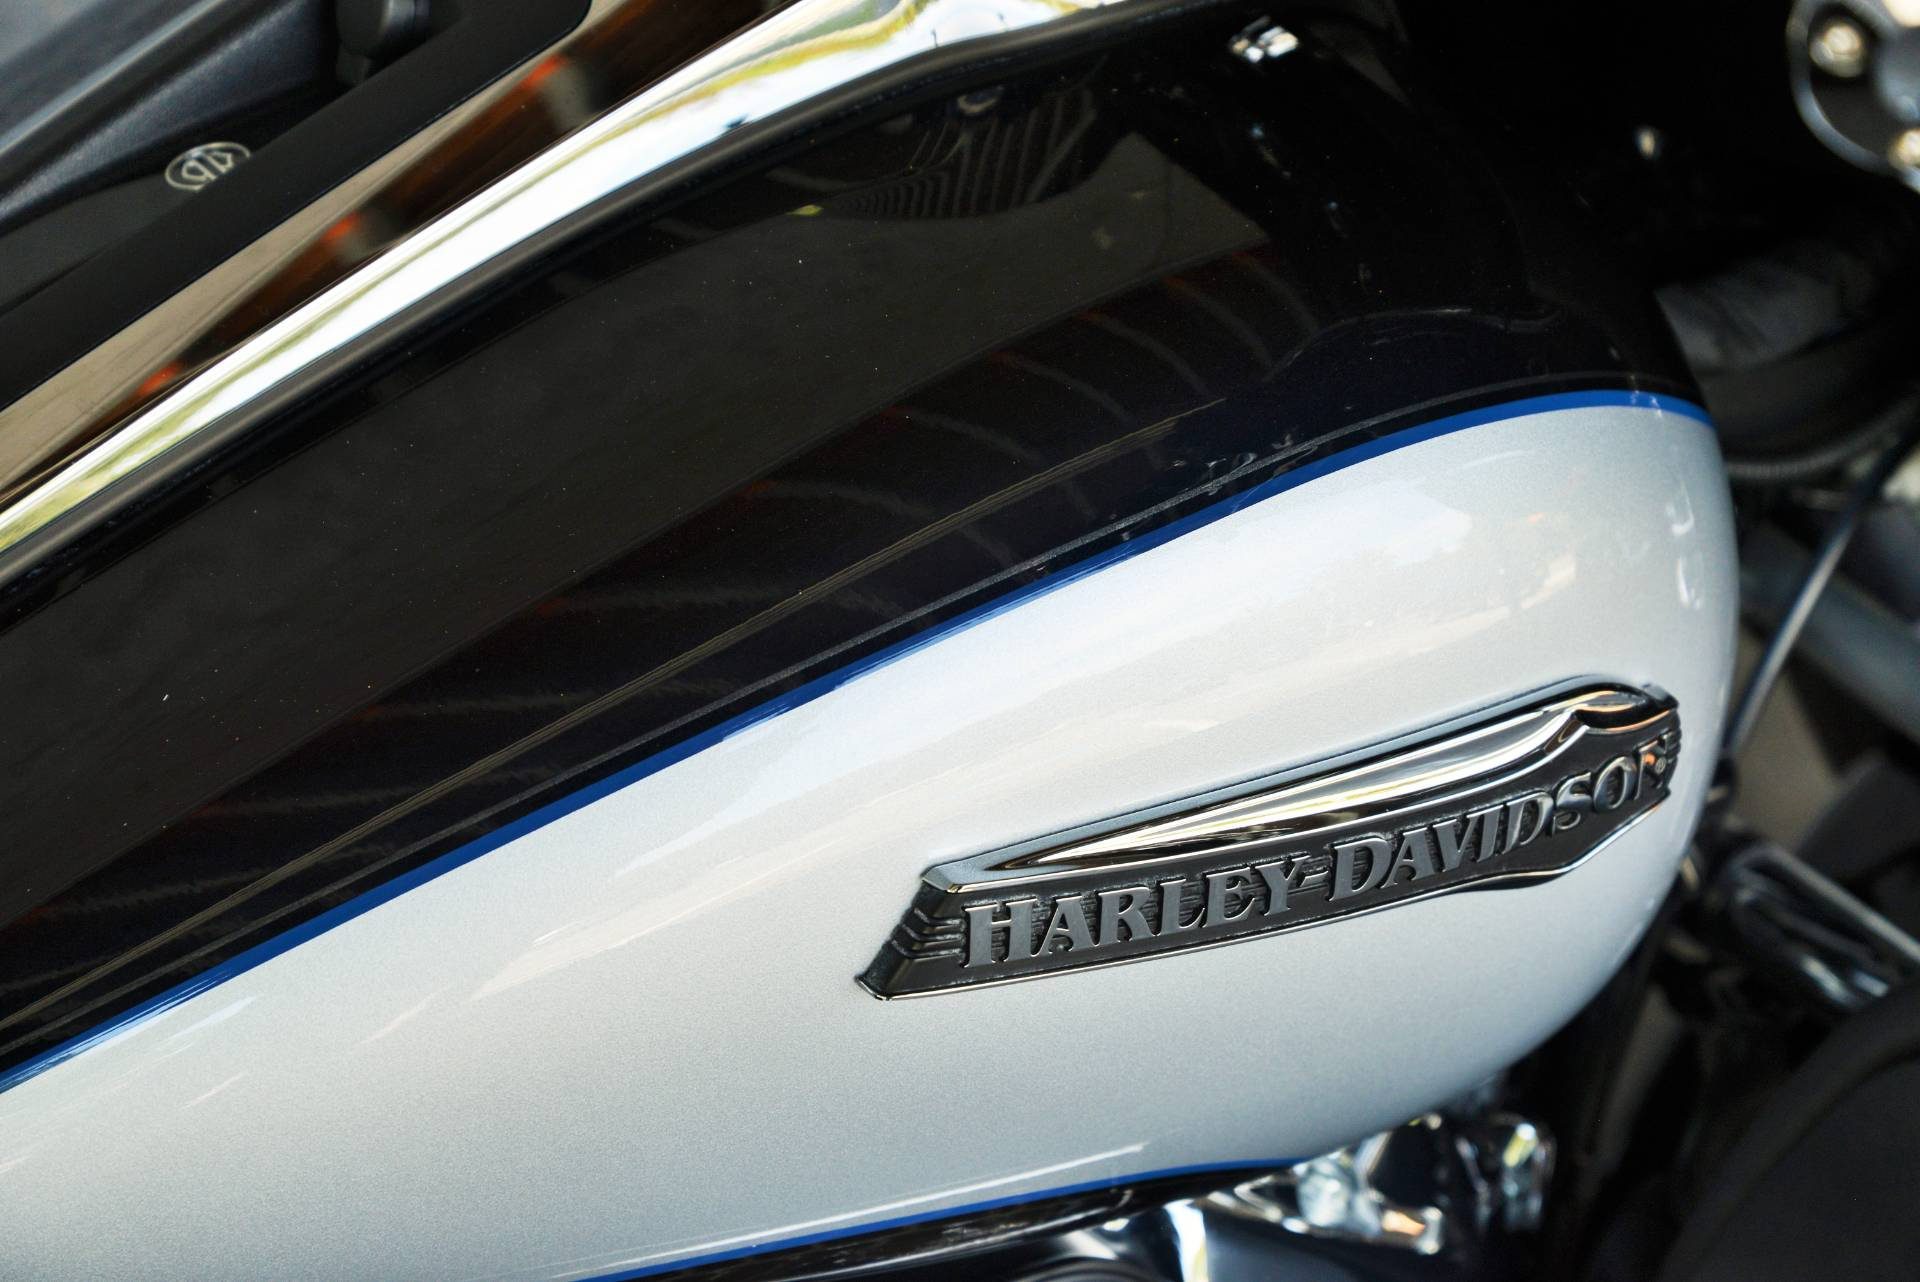 2019 Harley-Davidson TRI GLIDE ULTRA in Lakewood, New Jersey - Photo 4